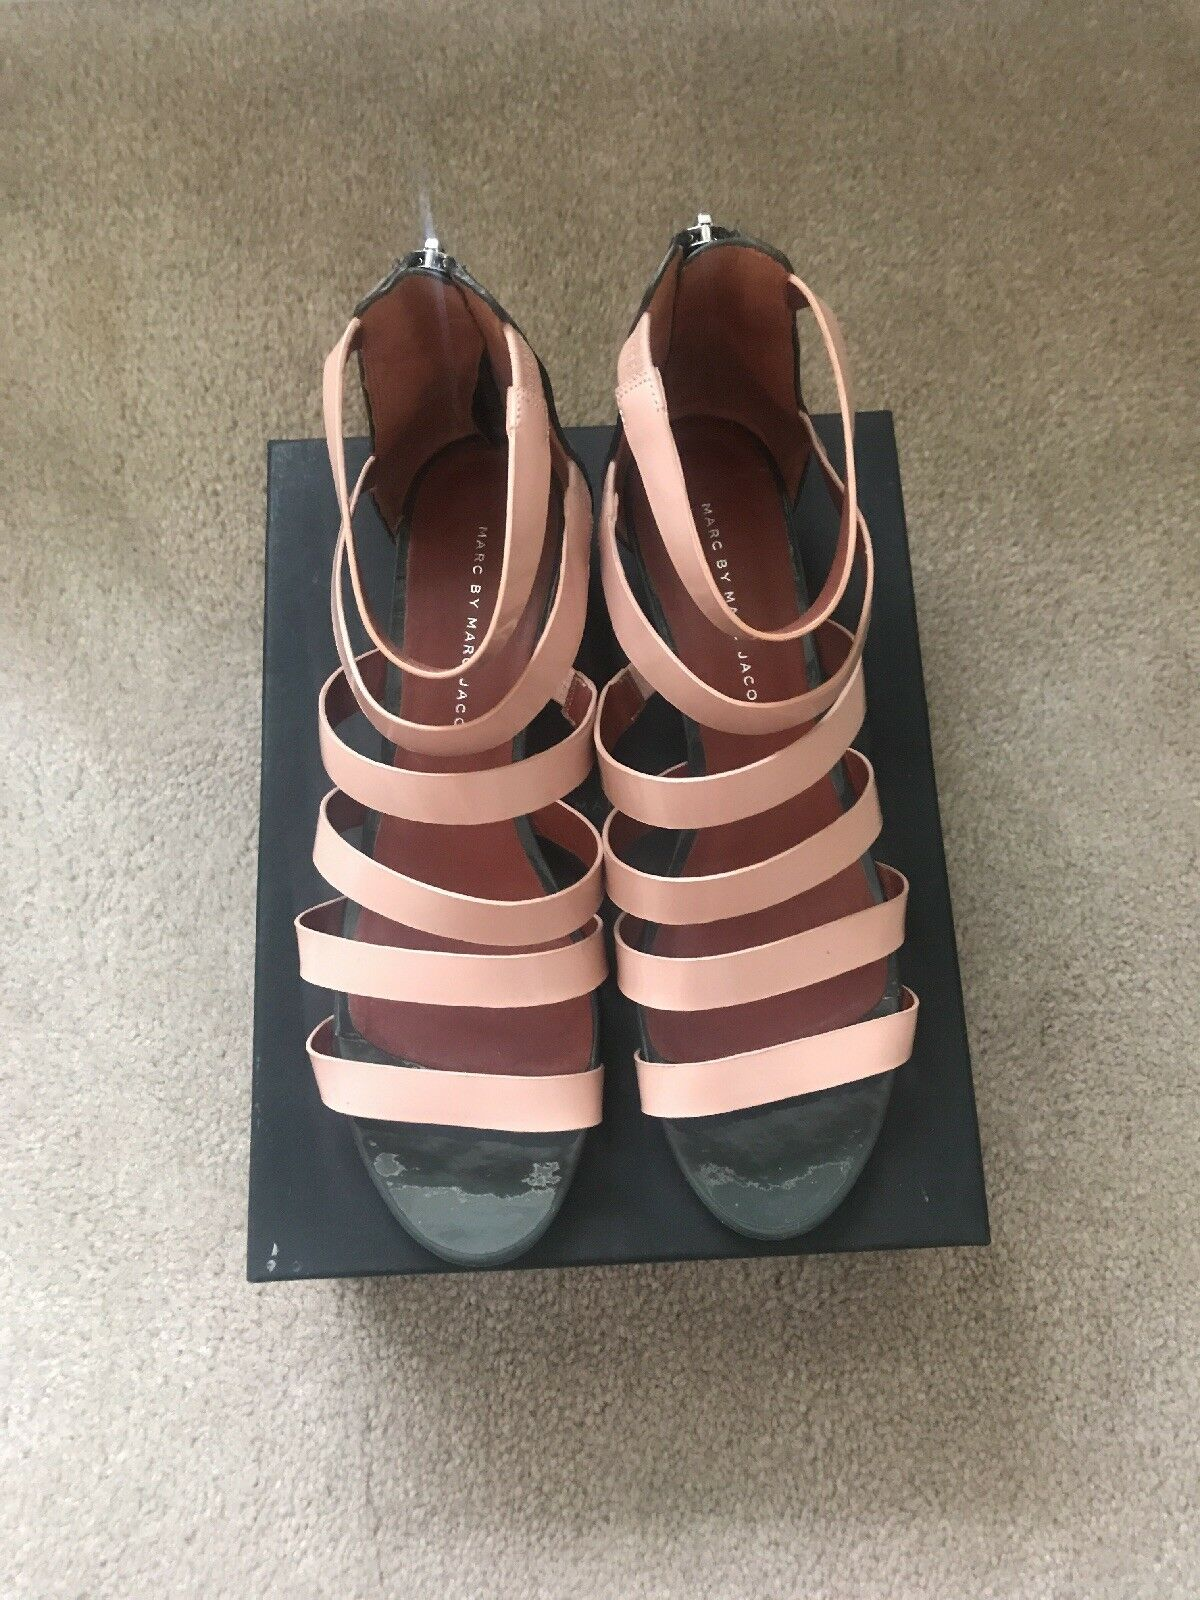 Marc by Marc Jacobs authentic gladiator wedge sandals Sz 10